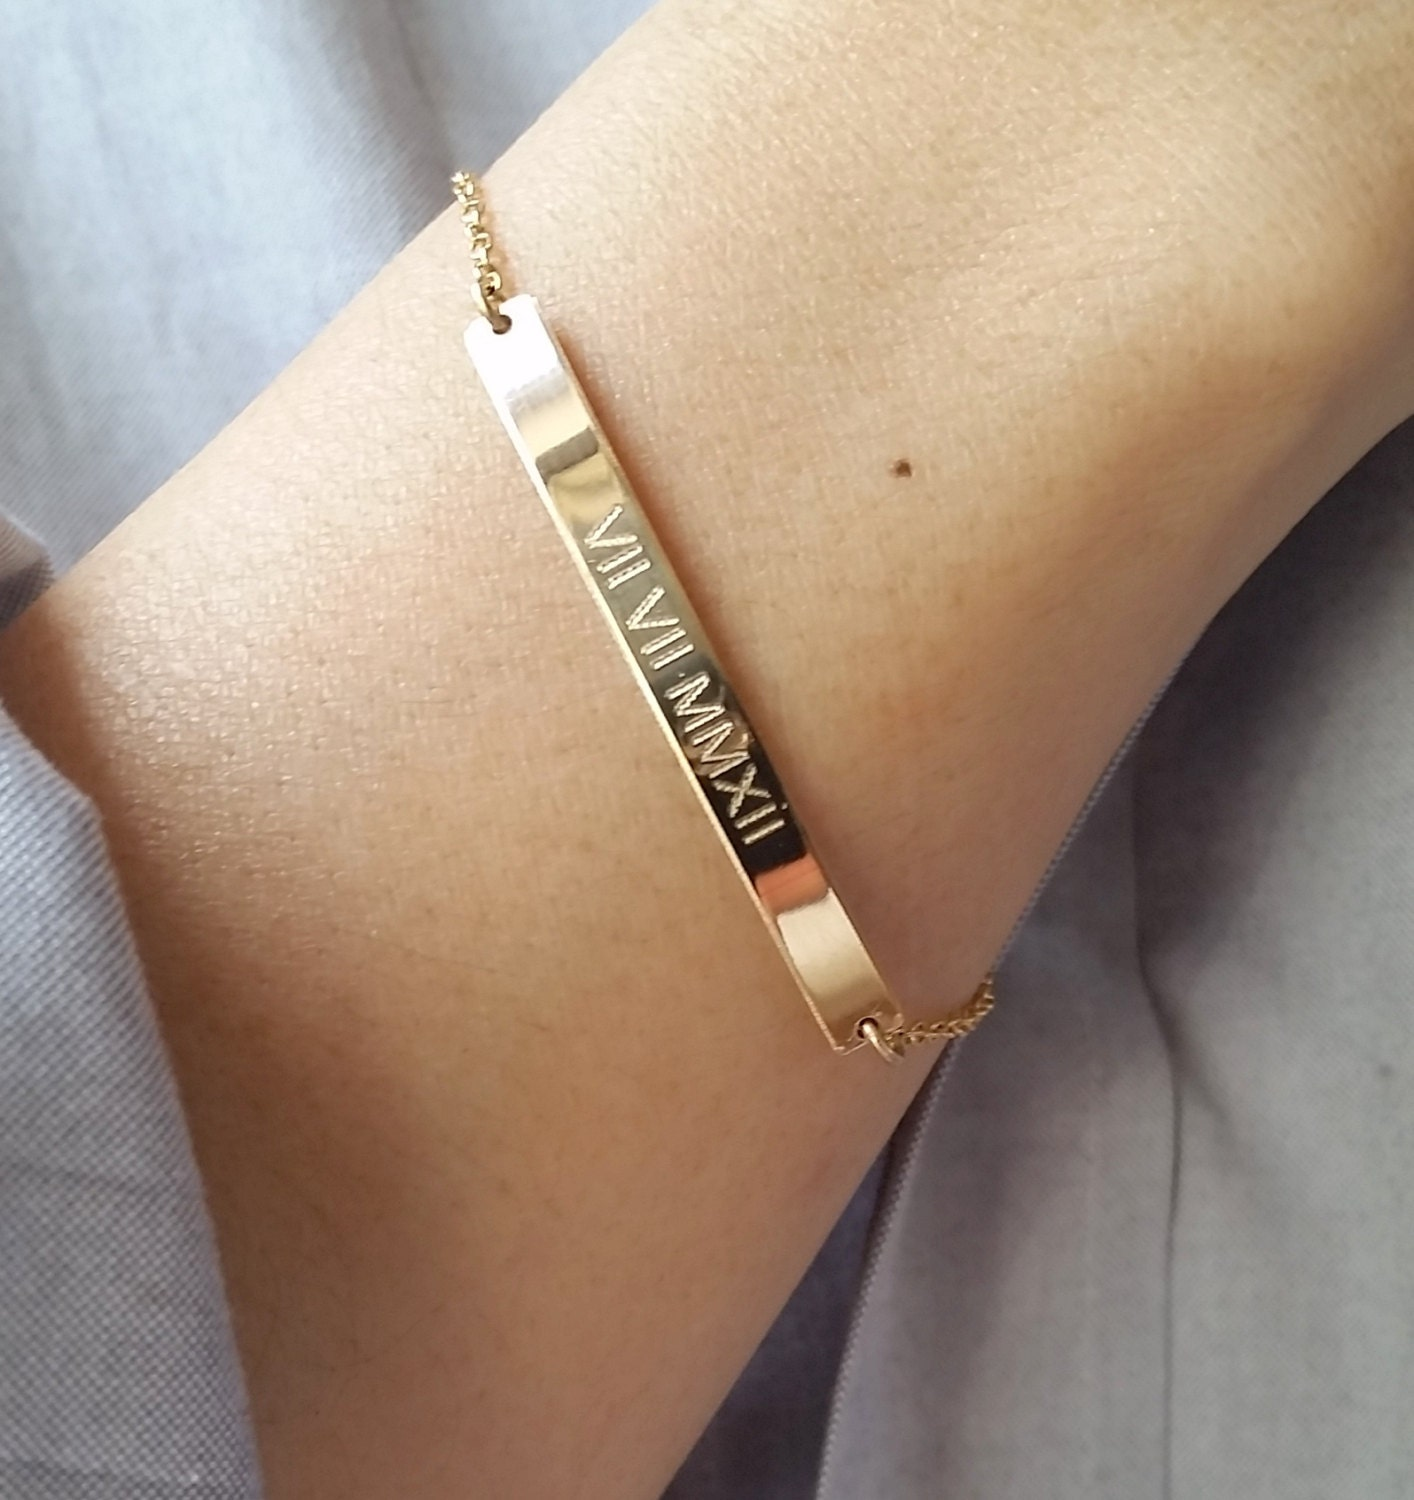 stamped hand bangle maria adventure adornment brass bangles jewelry personalized bracelets products artifact custom bracelet